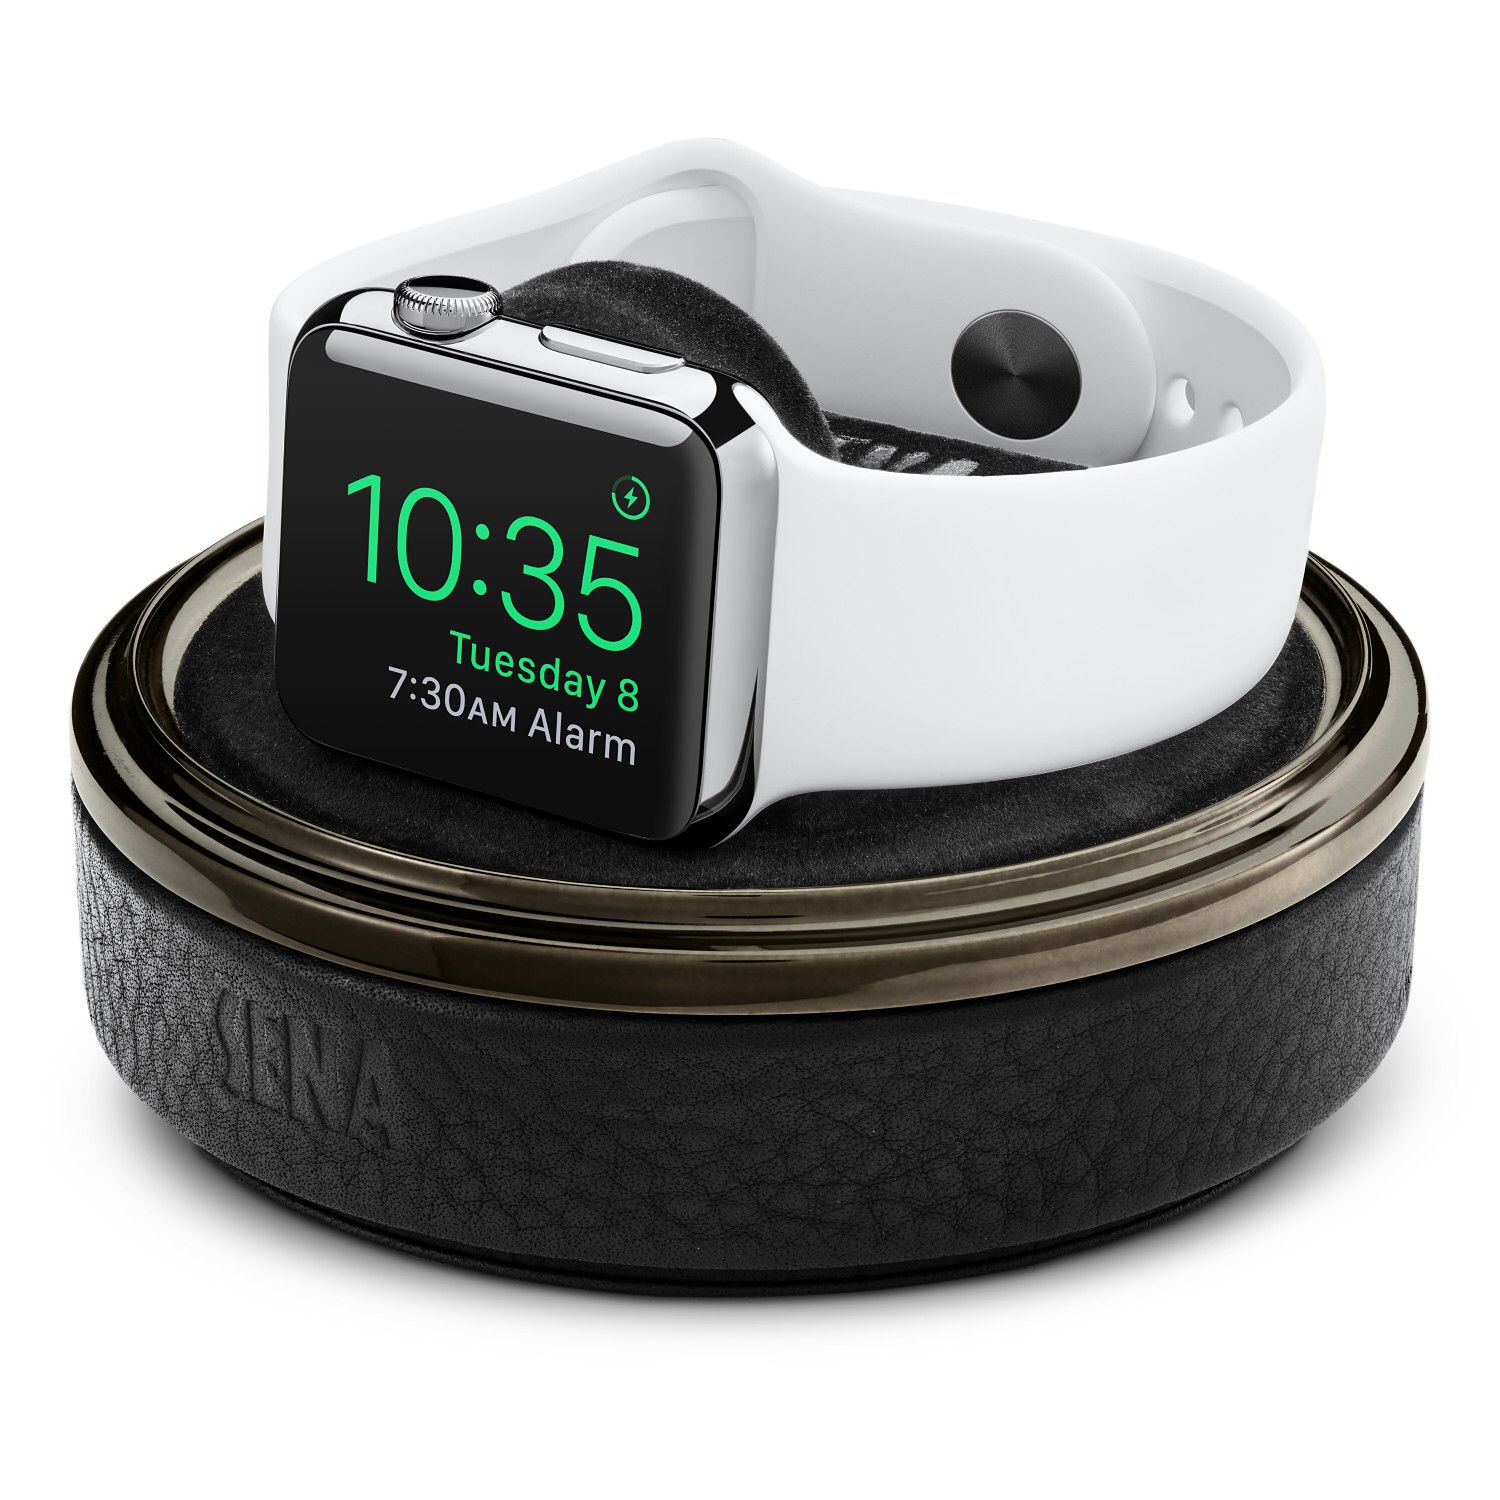 Sena Leather Case for Apple Watch  http://store.apple.com/xc/product/HJDZ2ZM/A